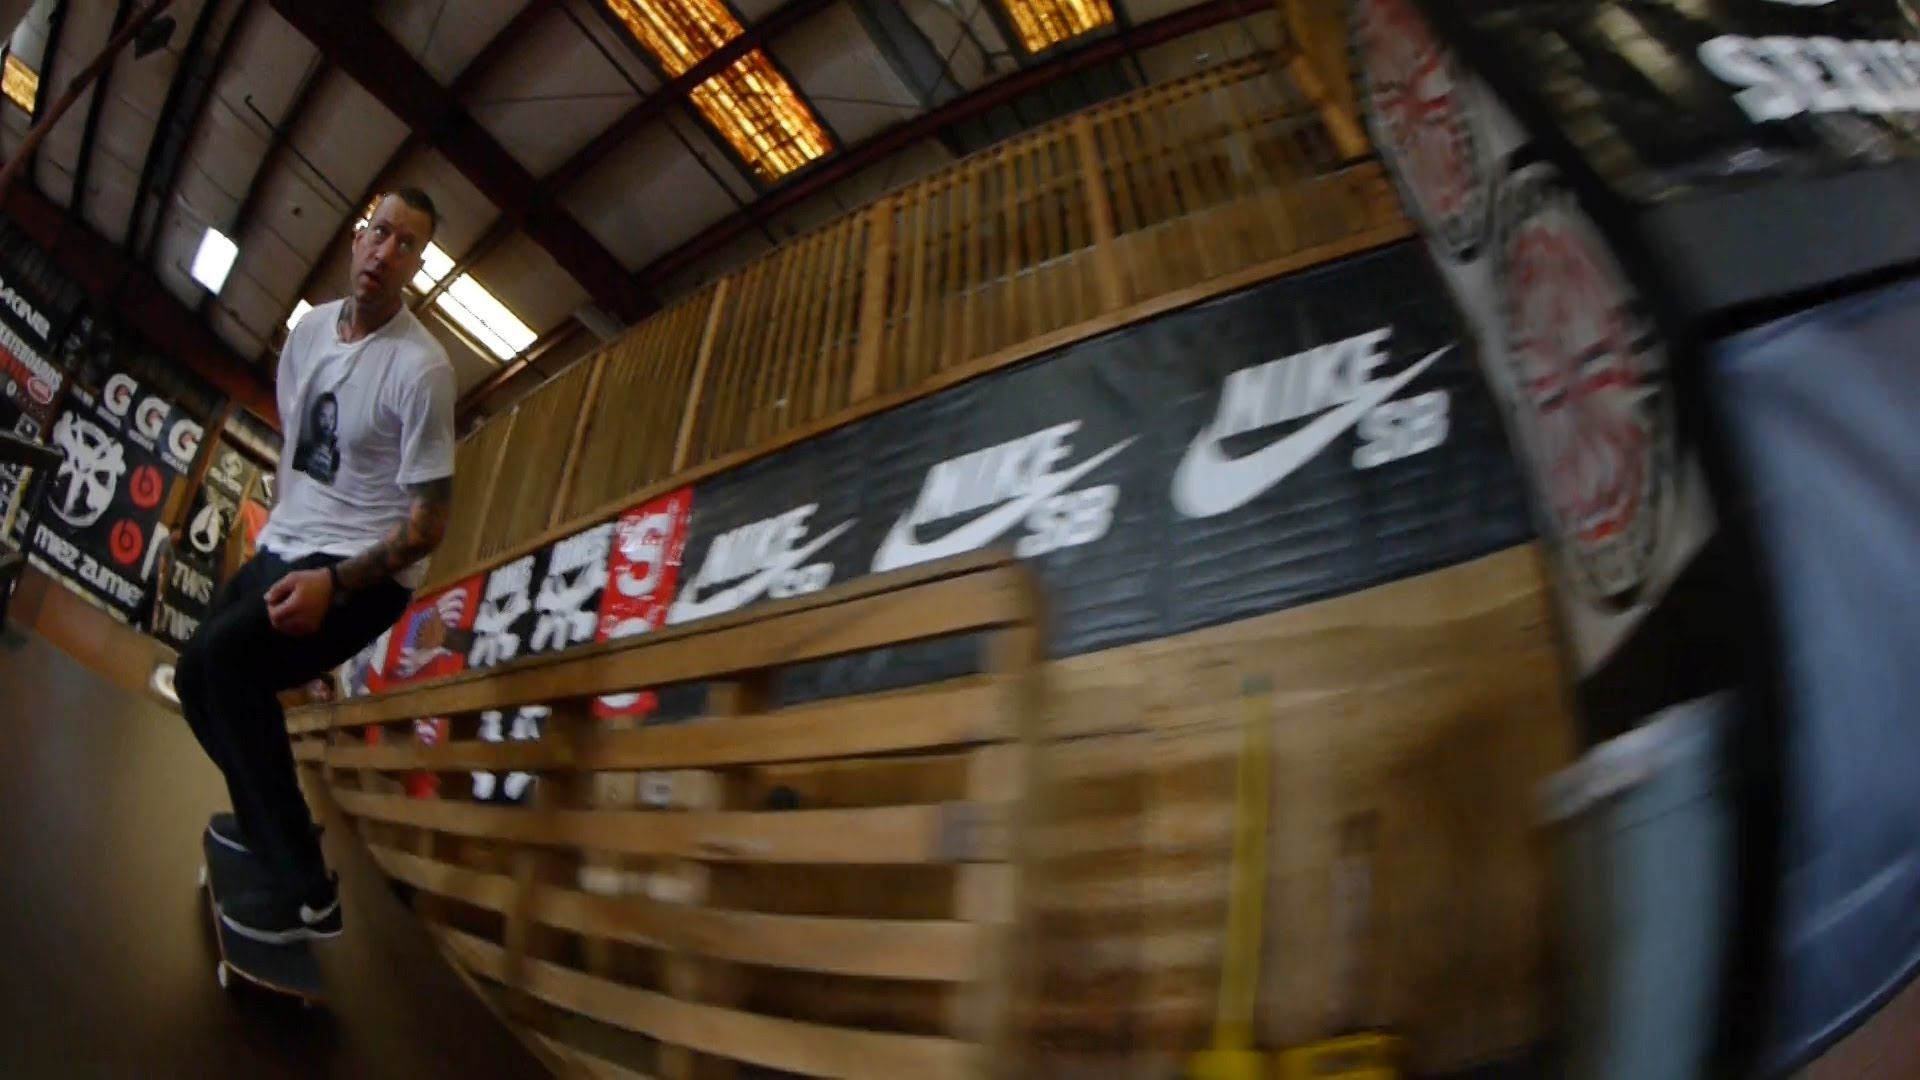 On Contests with Brian Anderson - http://DAILYSKATETUBE.COM/on-contests-with-brian-anderson/ - http://www.youtube.com/watch?v=GOQOh_G4luI&feature=youtube_gdata Whether in a stadium, a warehouse, a backyard or a parking lot, skateboard contests can be serious, fun, exciting and frustrating. Legendary Nike SB pro Brian Anderson has experienced his fair... - anderson, brian, Contests